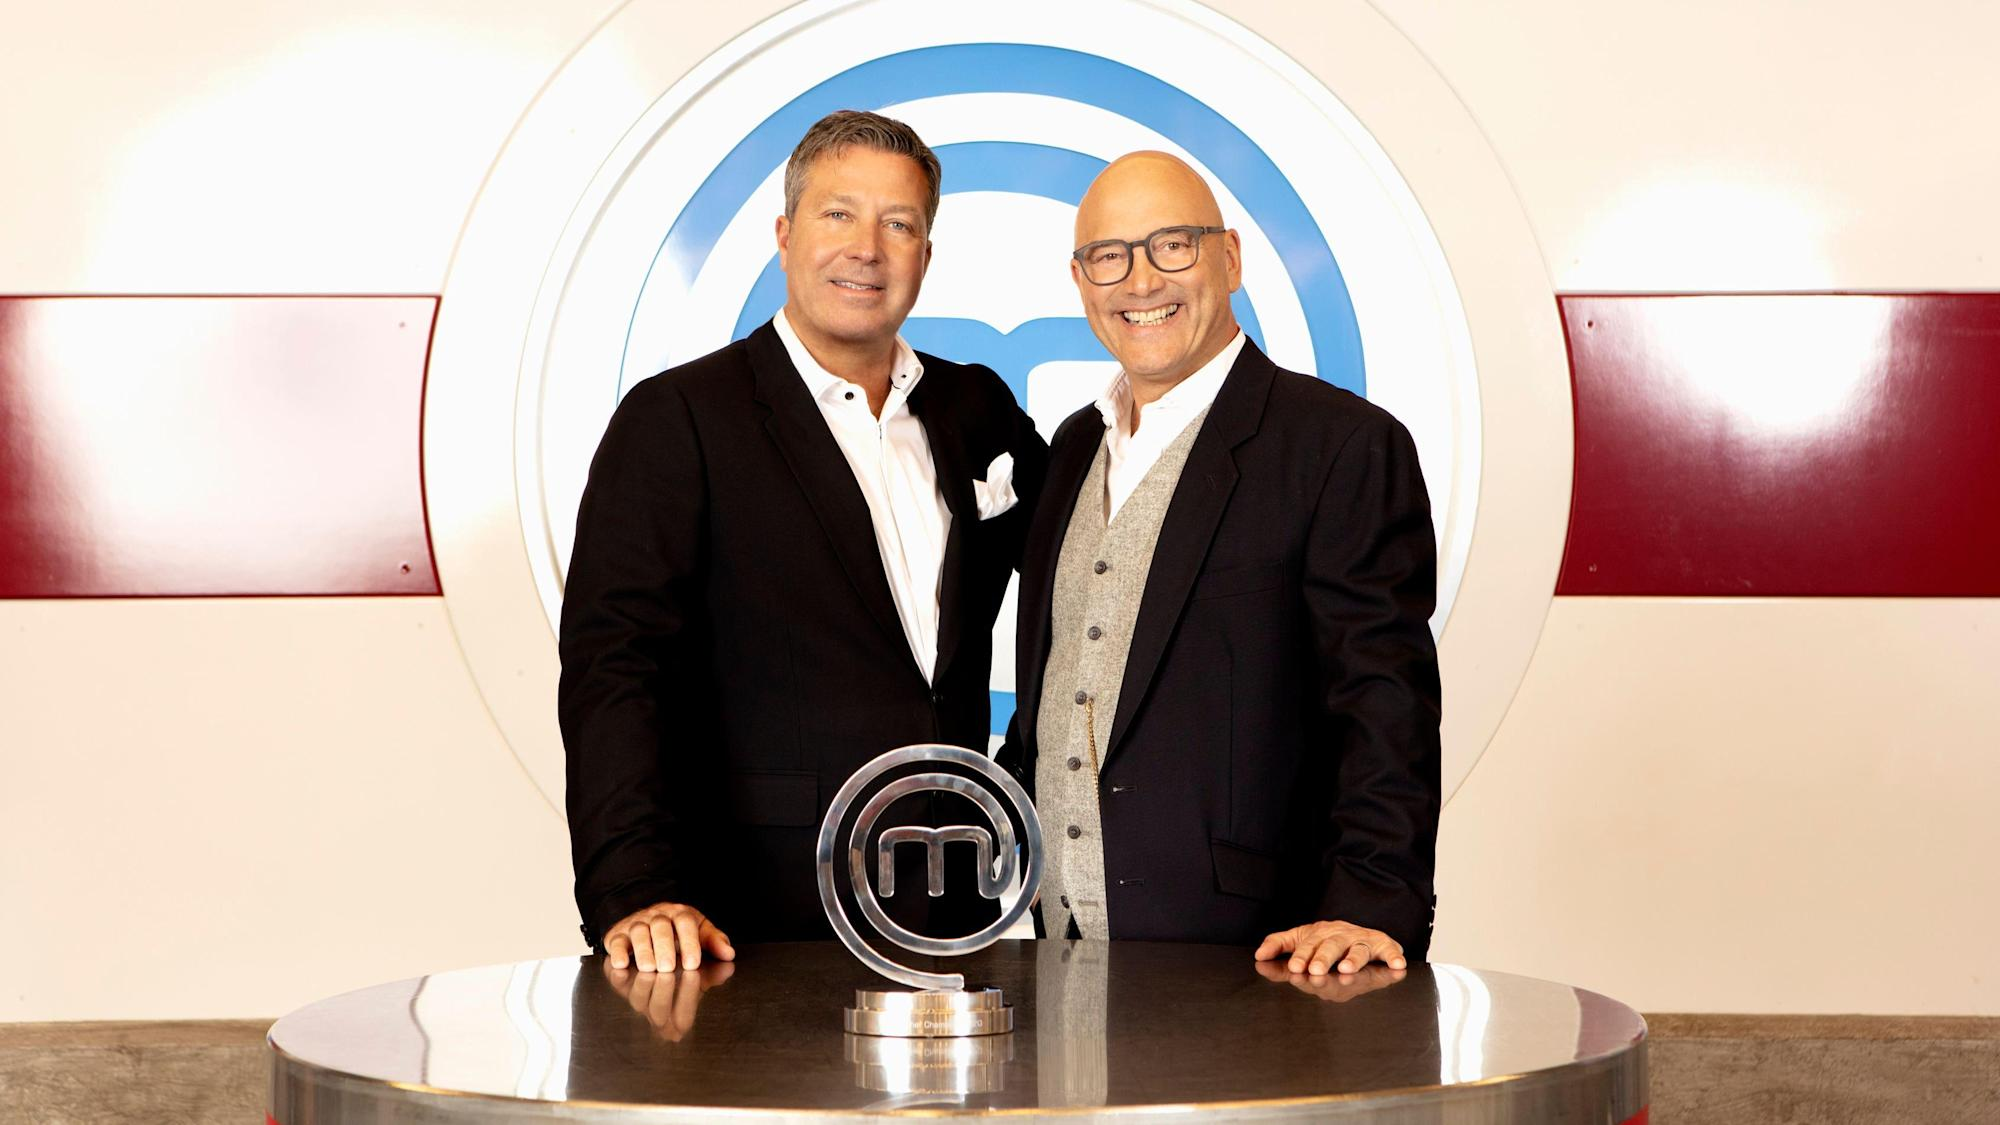 MasterChef winner will 'seize opportunity' for career in cooking